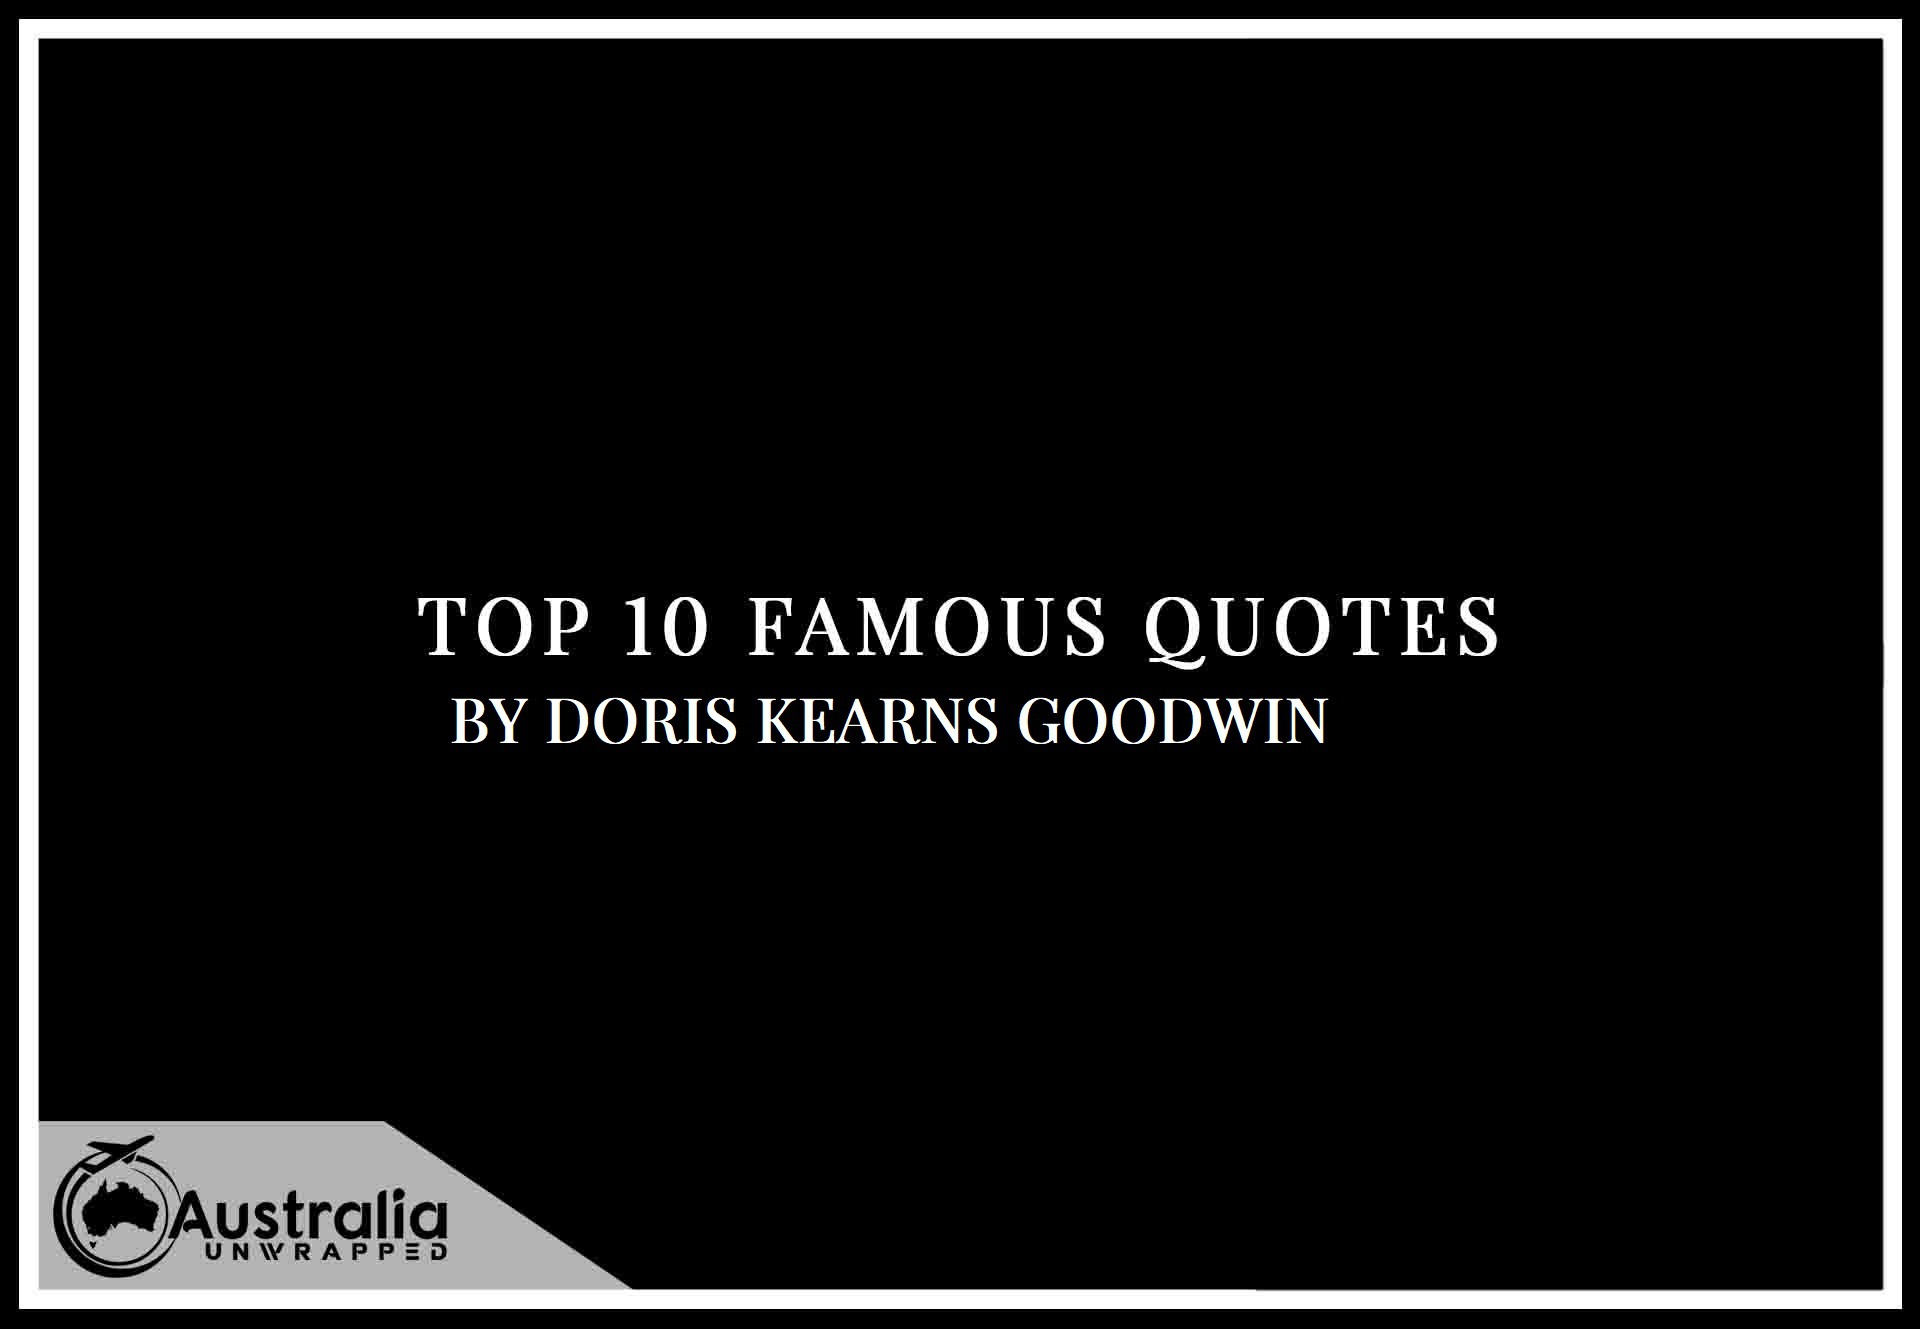 Top 10 Famous Quotes by Author Doris Kearns Goodwin